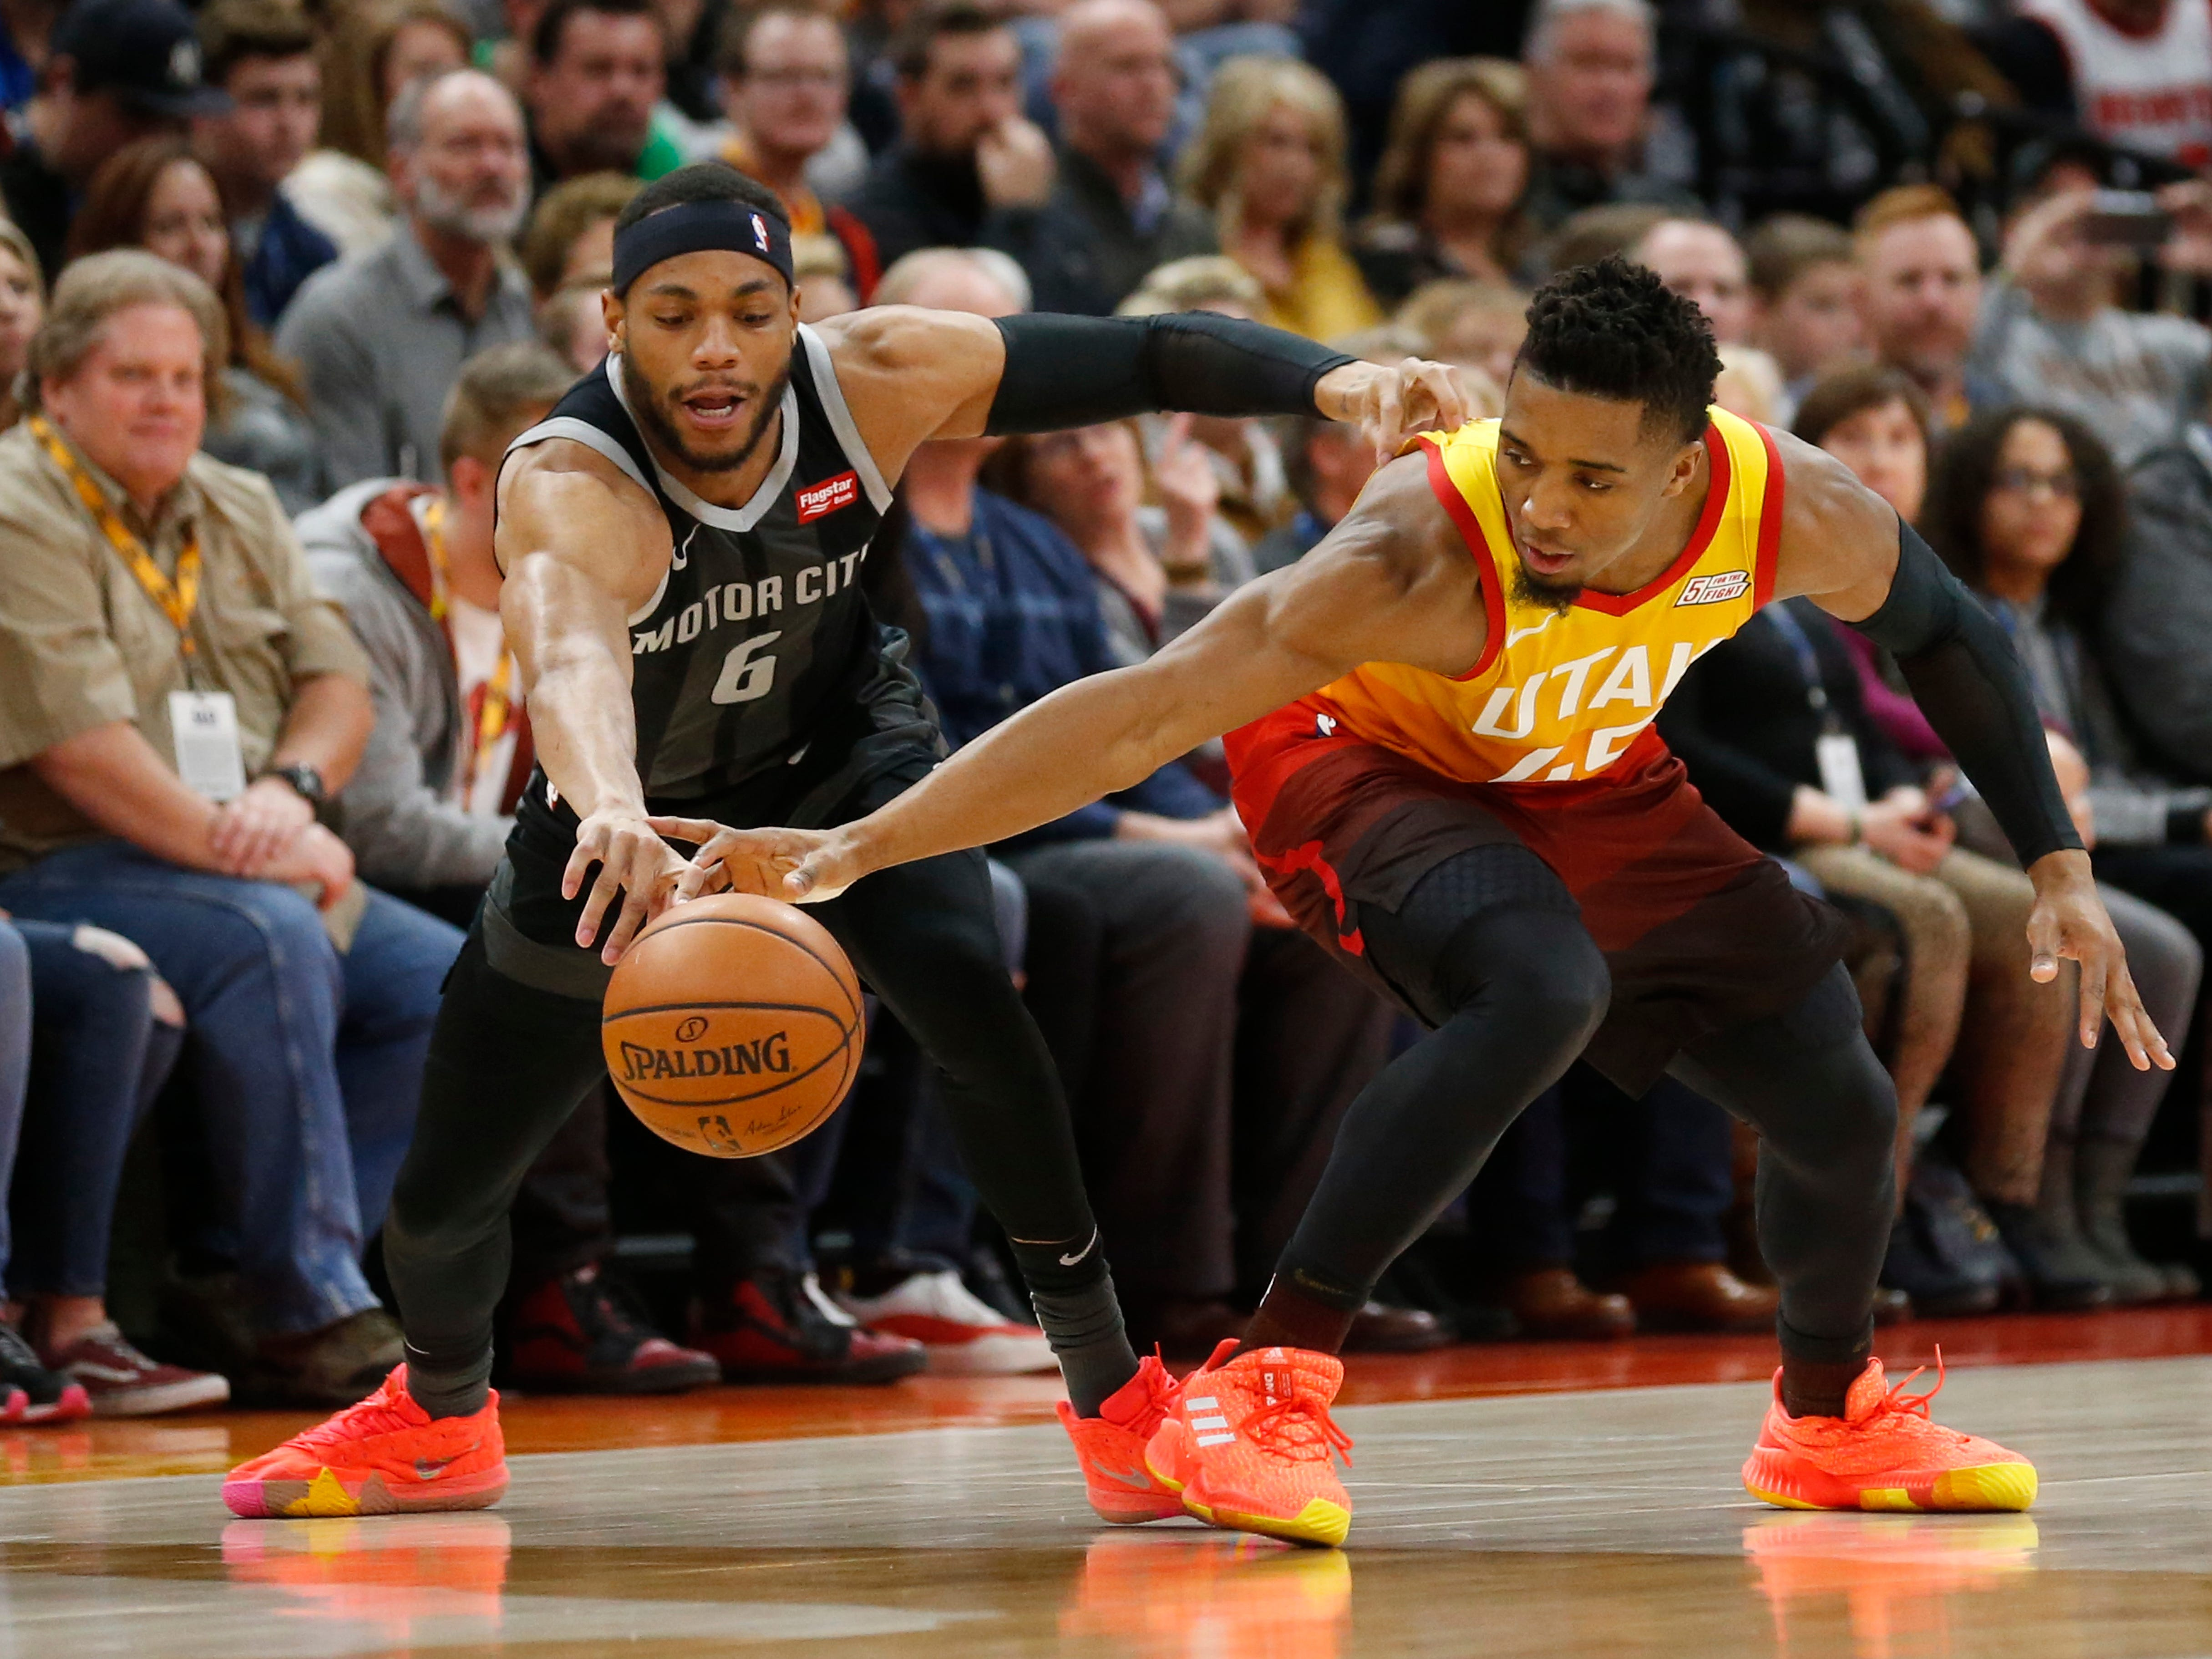 Detroit Pistons guard Bruce Brown, left, attempts a steal from Utah Jazz guard Donovan Mitchell (45) during the first half of an NBA basketball game Monday, Jan. 14, 2019, in Salt Lake City. (AP Photo/Rick Bowmer)